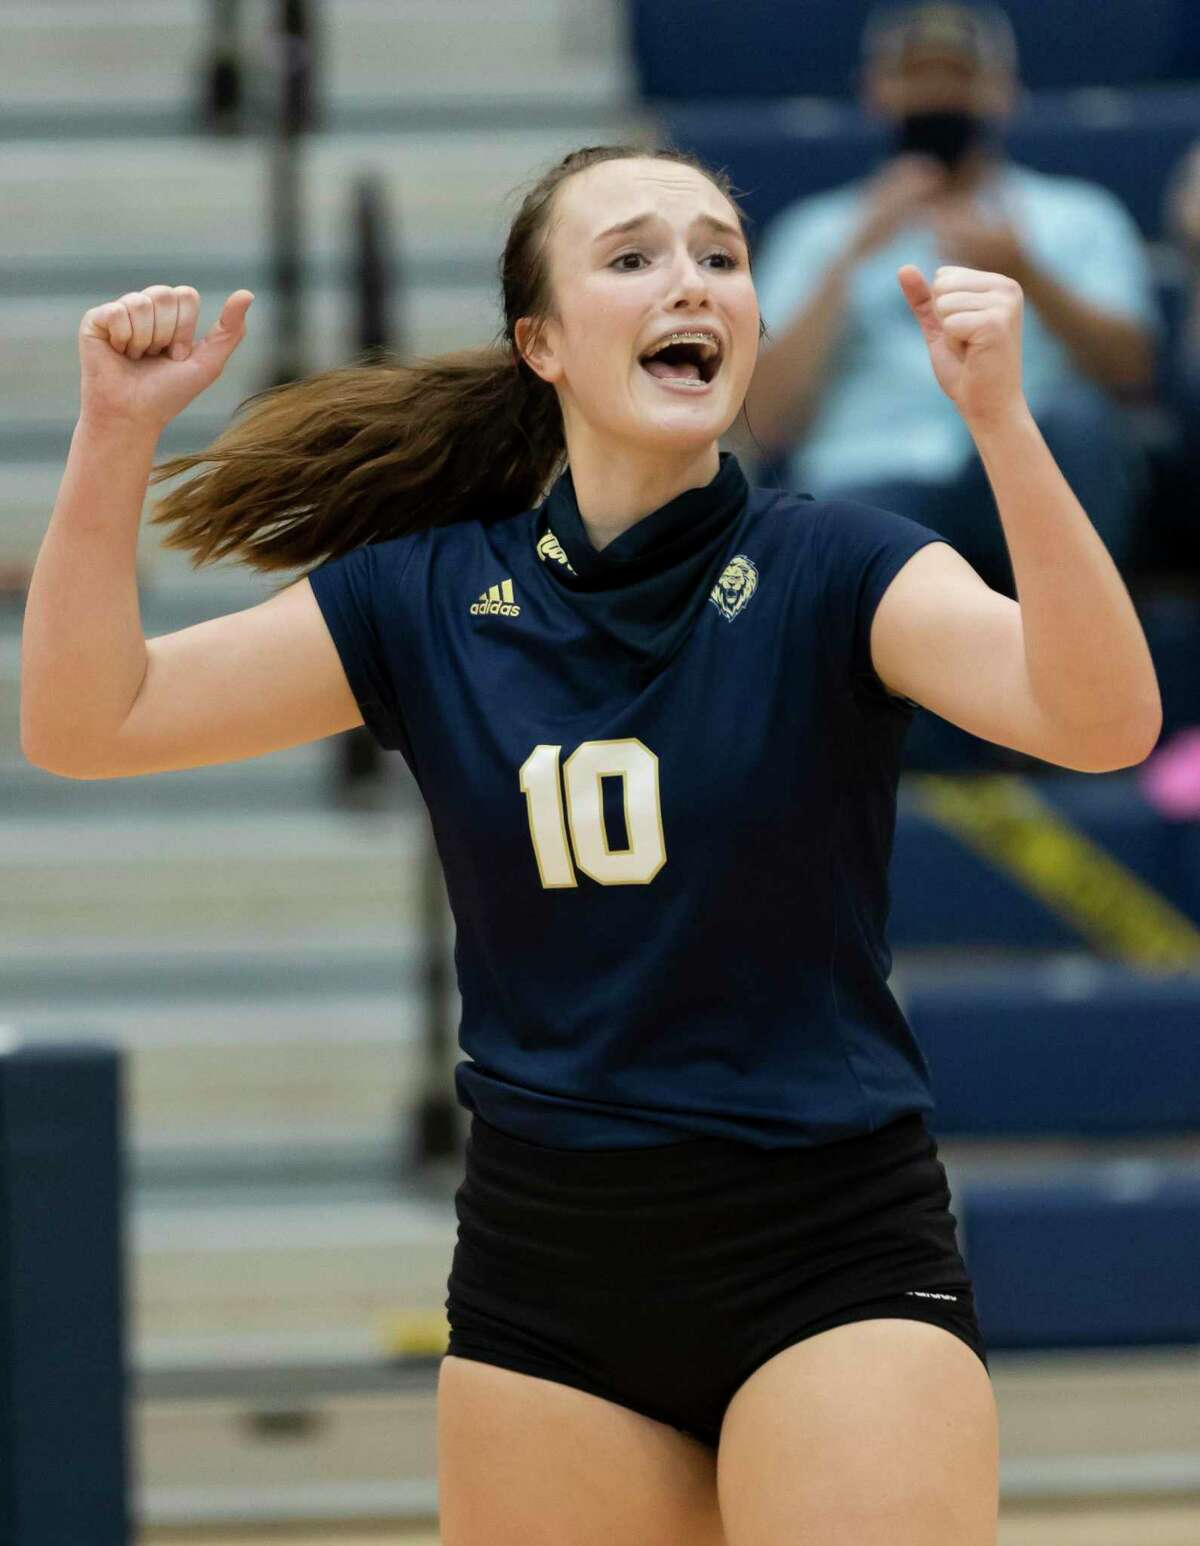 Lake Creek setter Lauren Greene (10) cheers after their team wins the first set of a District 20-5A volleyball match at Lake Creek High School against Porter in Montgomery, Tuesday, Oct. 13, 2020.